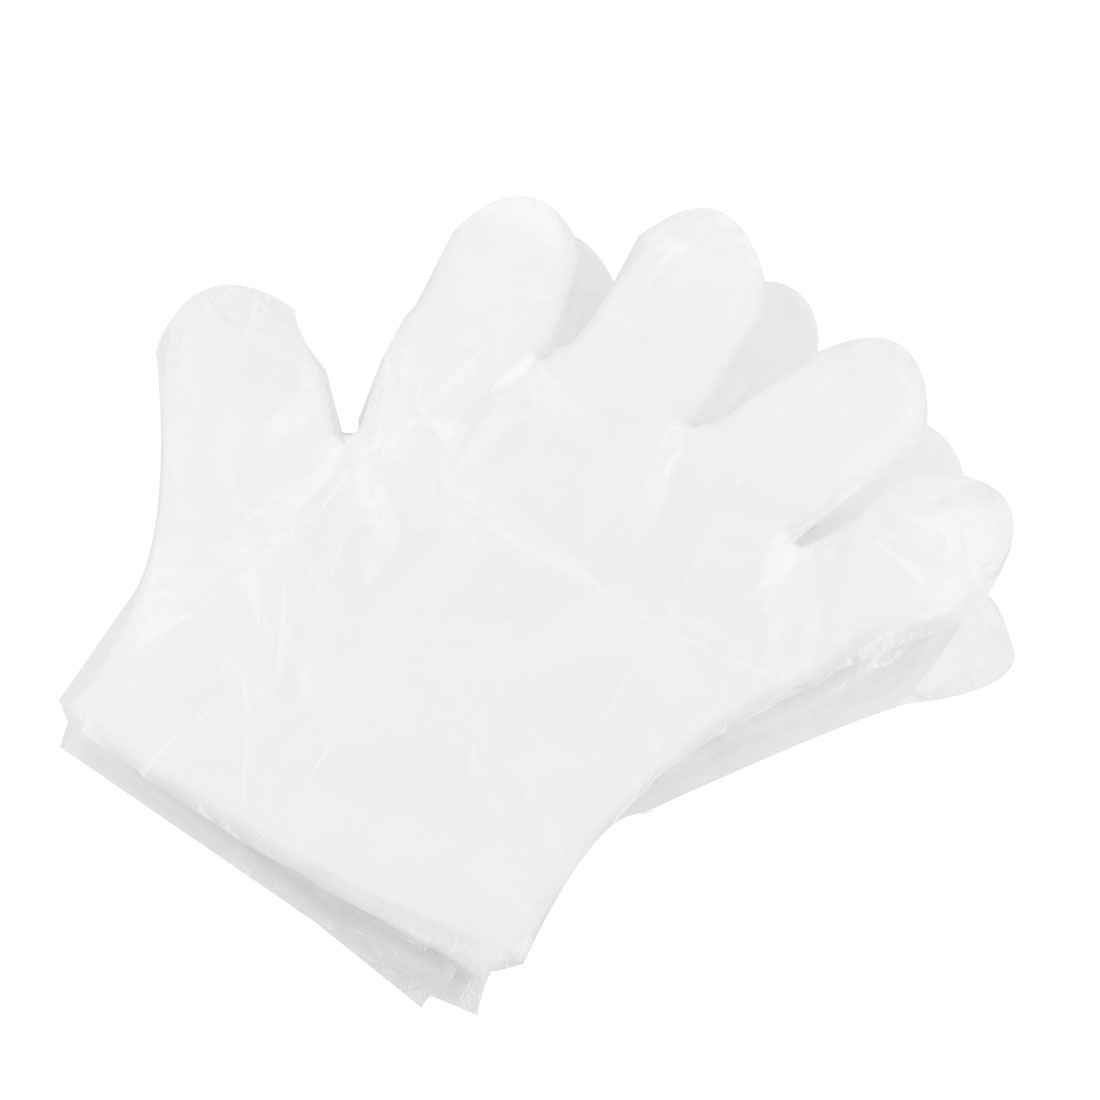 Restaurant PE Food Service Hand Protector Disposable Clean Gloves Clear 100pcs - image 1 of 1